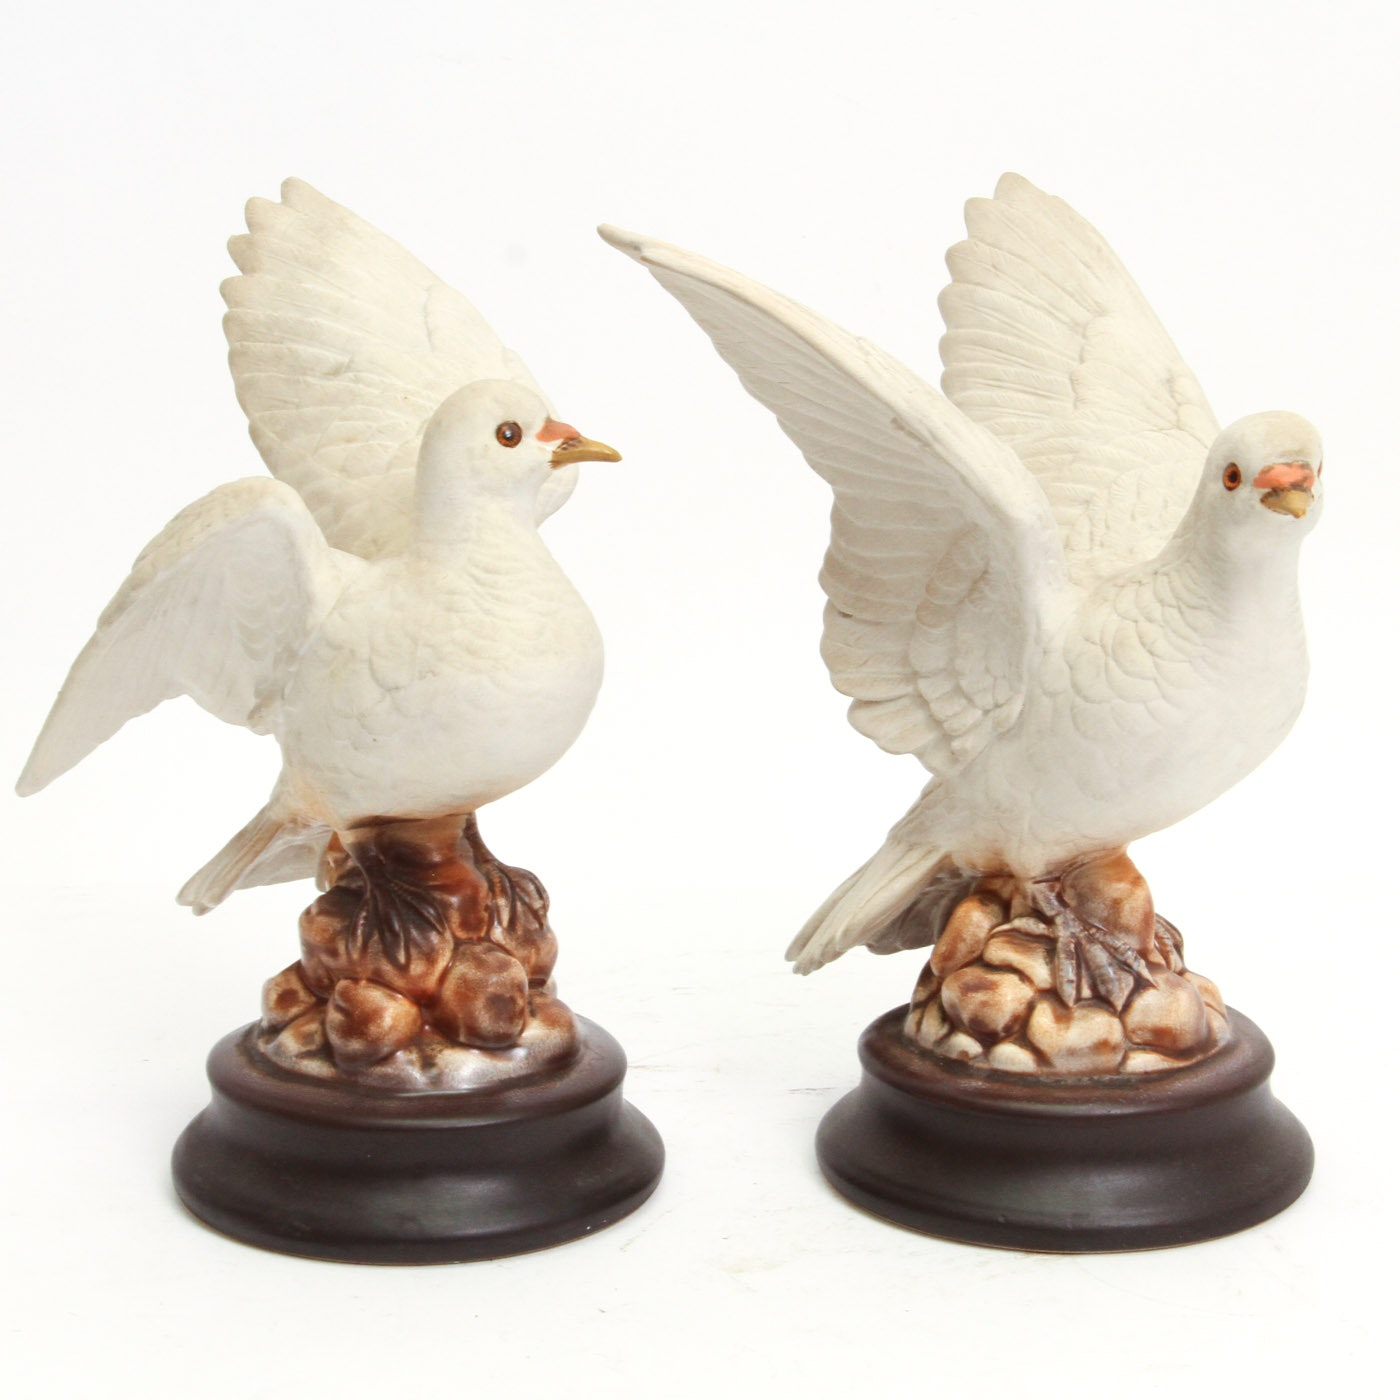 Pair of Vintage Roselane Pottery Dove Figurines